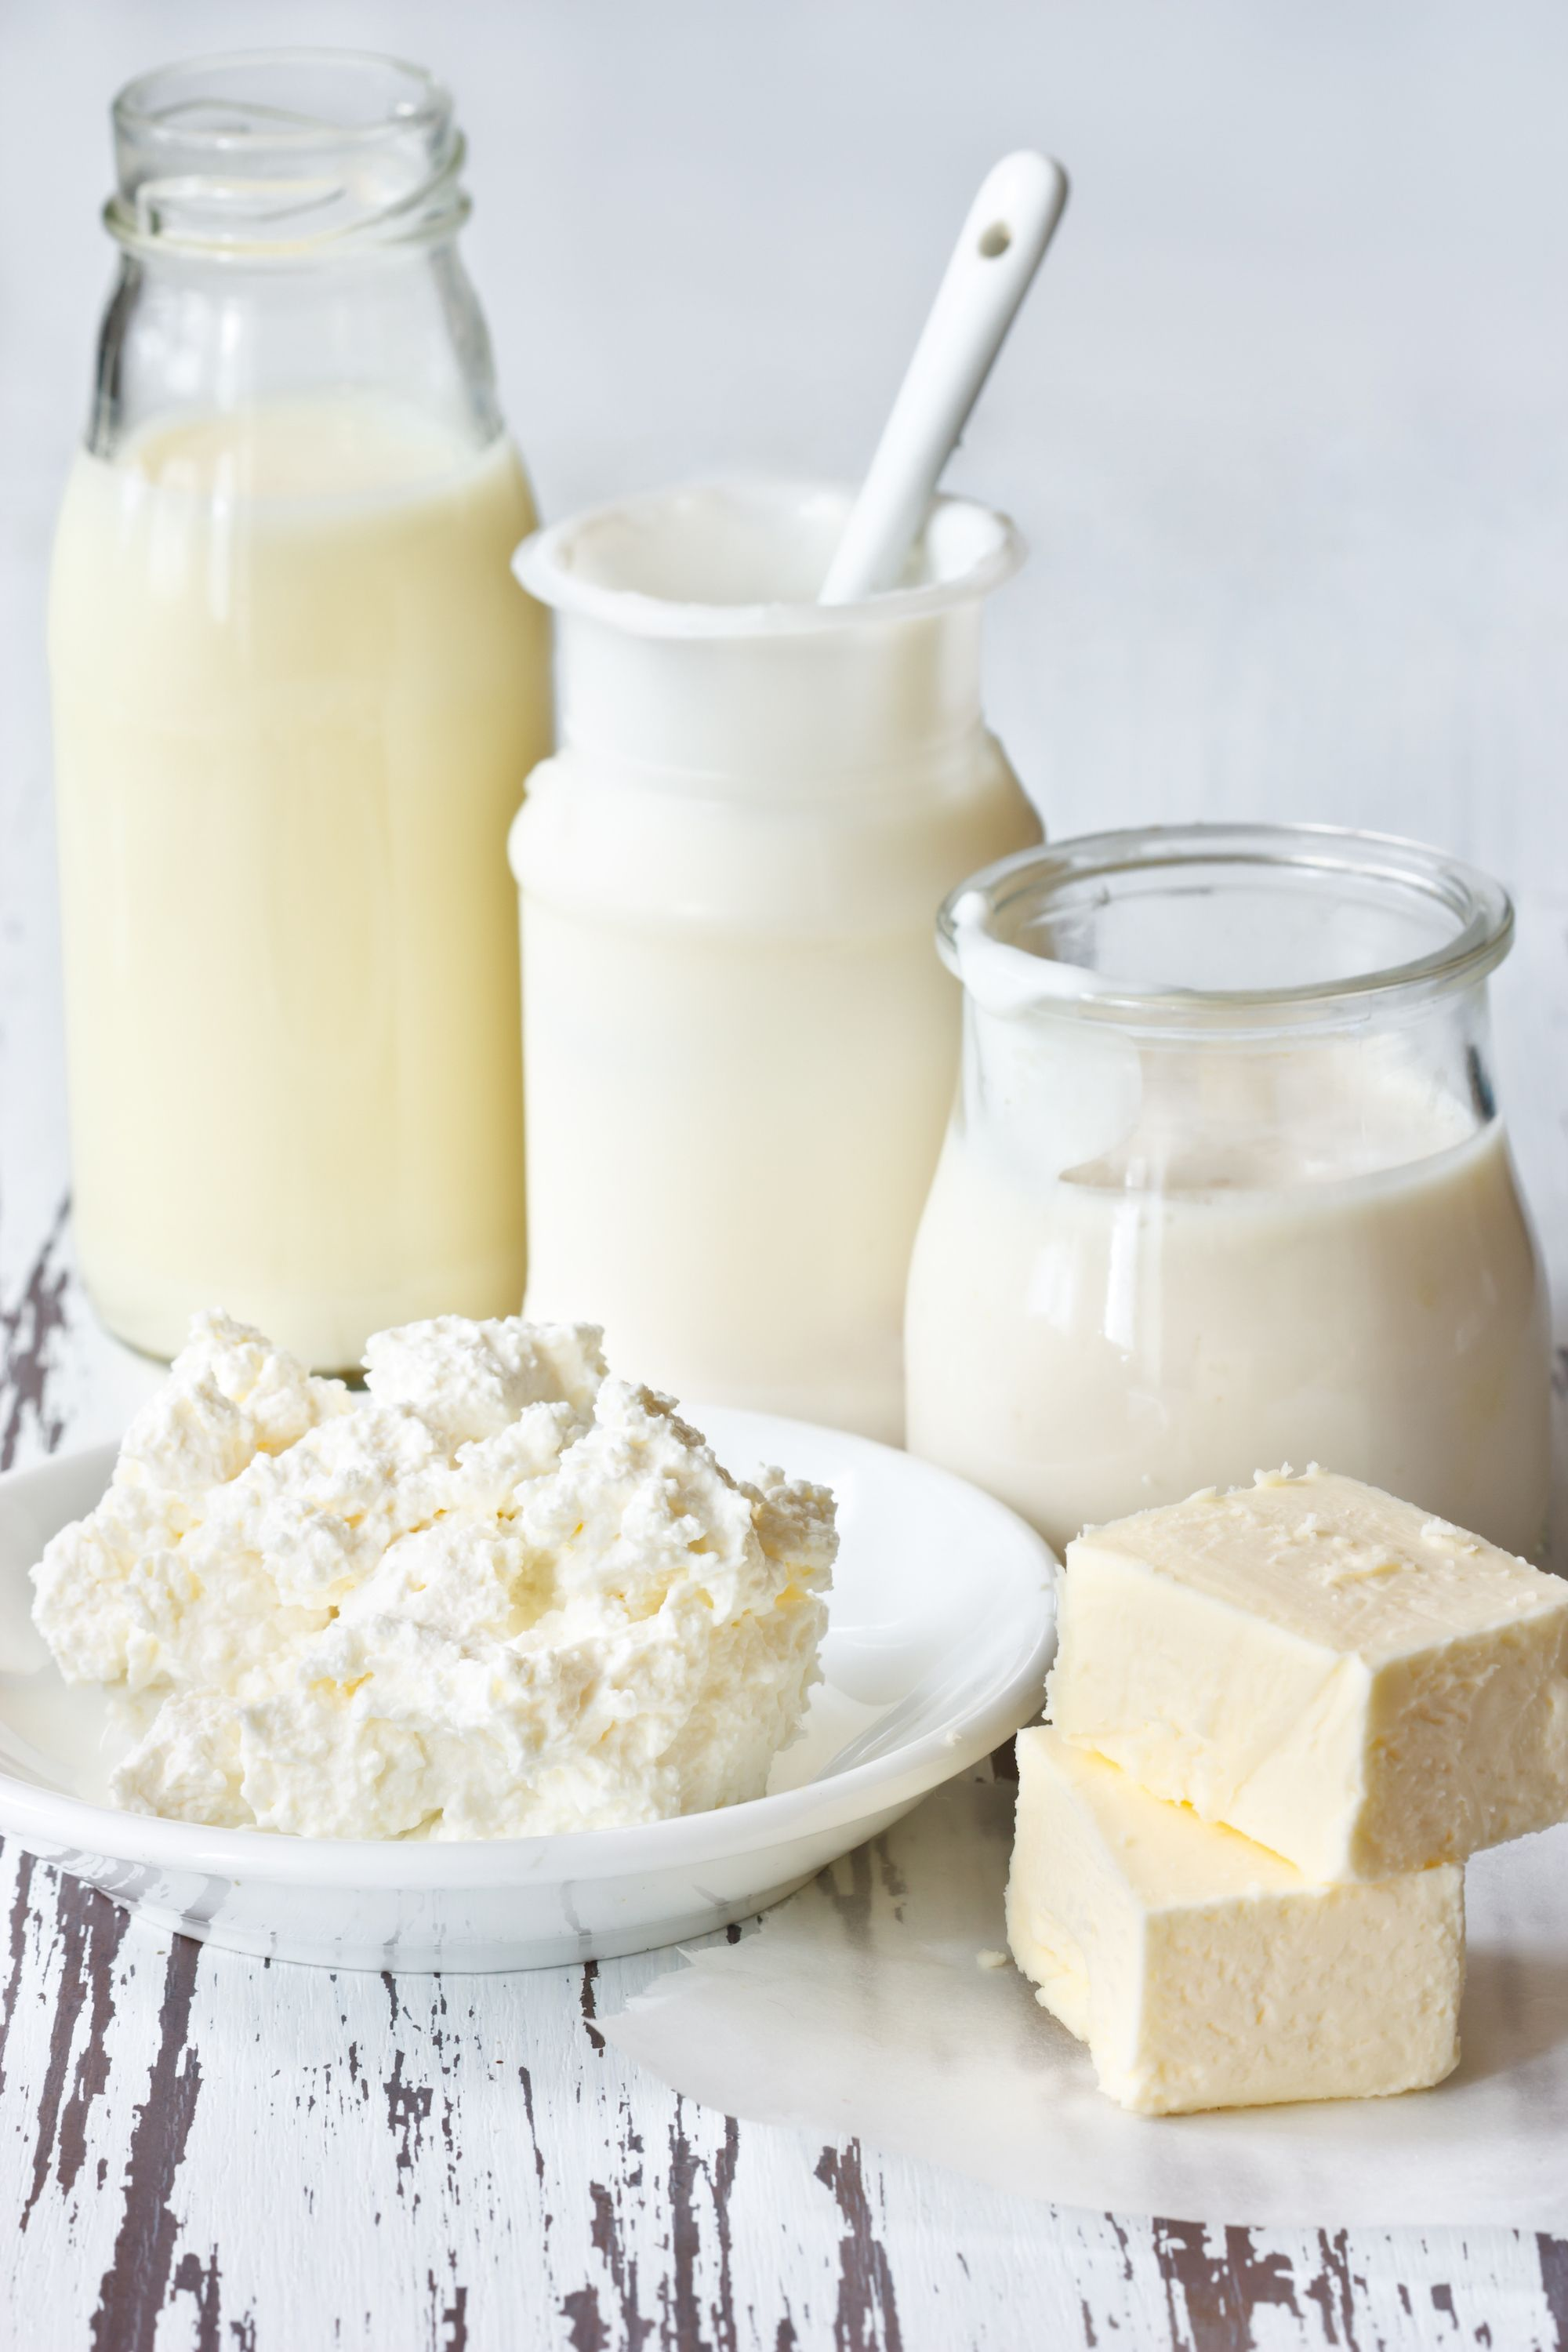 Is dairy fat good or bad for health in general, weight control in particular? It almost certainly depends. In the context of a generally poor diet, full-fat and otherwise minimally processed and unadulterated milk, cheese, and yogurt are apt to be more nutritious and more satiating than many alternatives. Learn more about the pros and cons of full fat dairy products like whole milk, yogurt, and cheese.